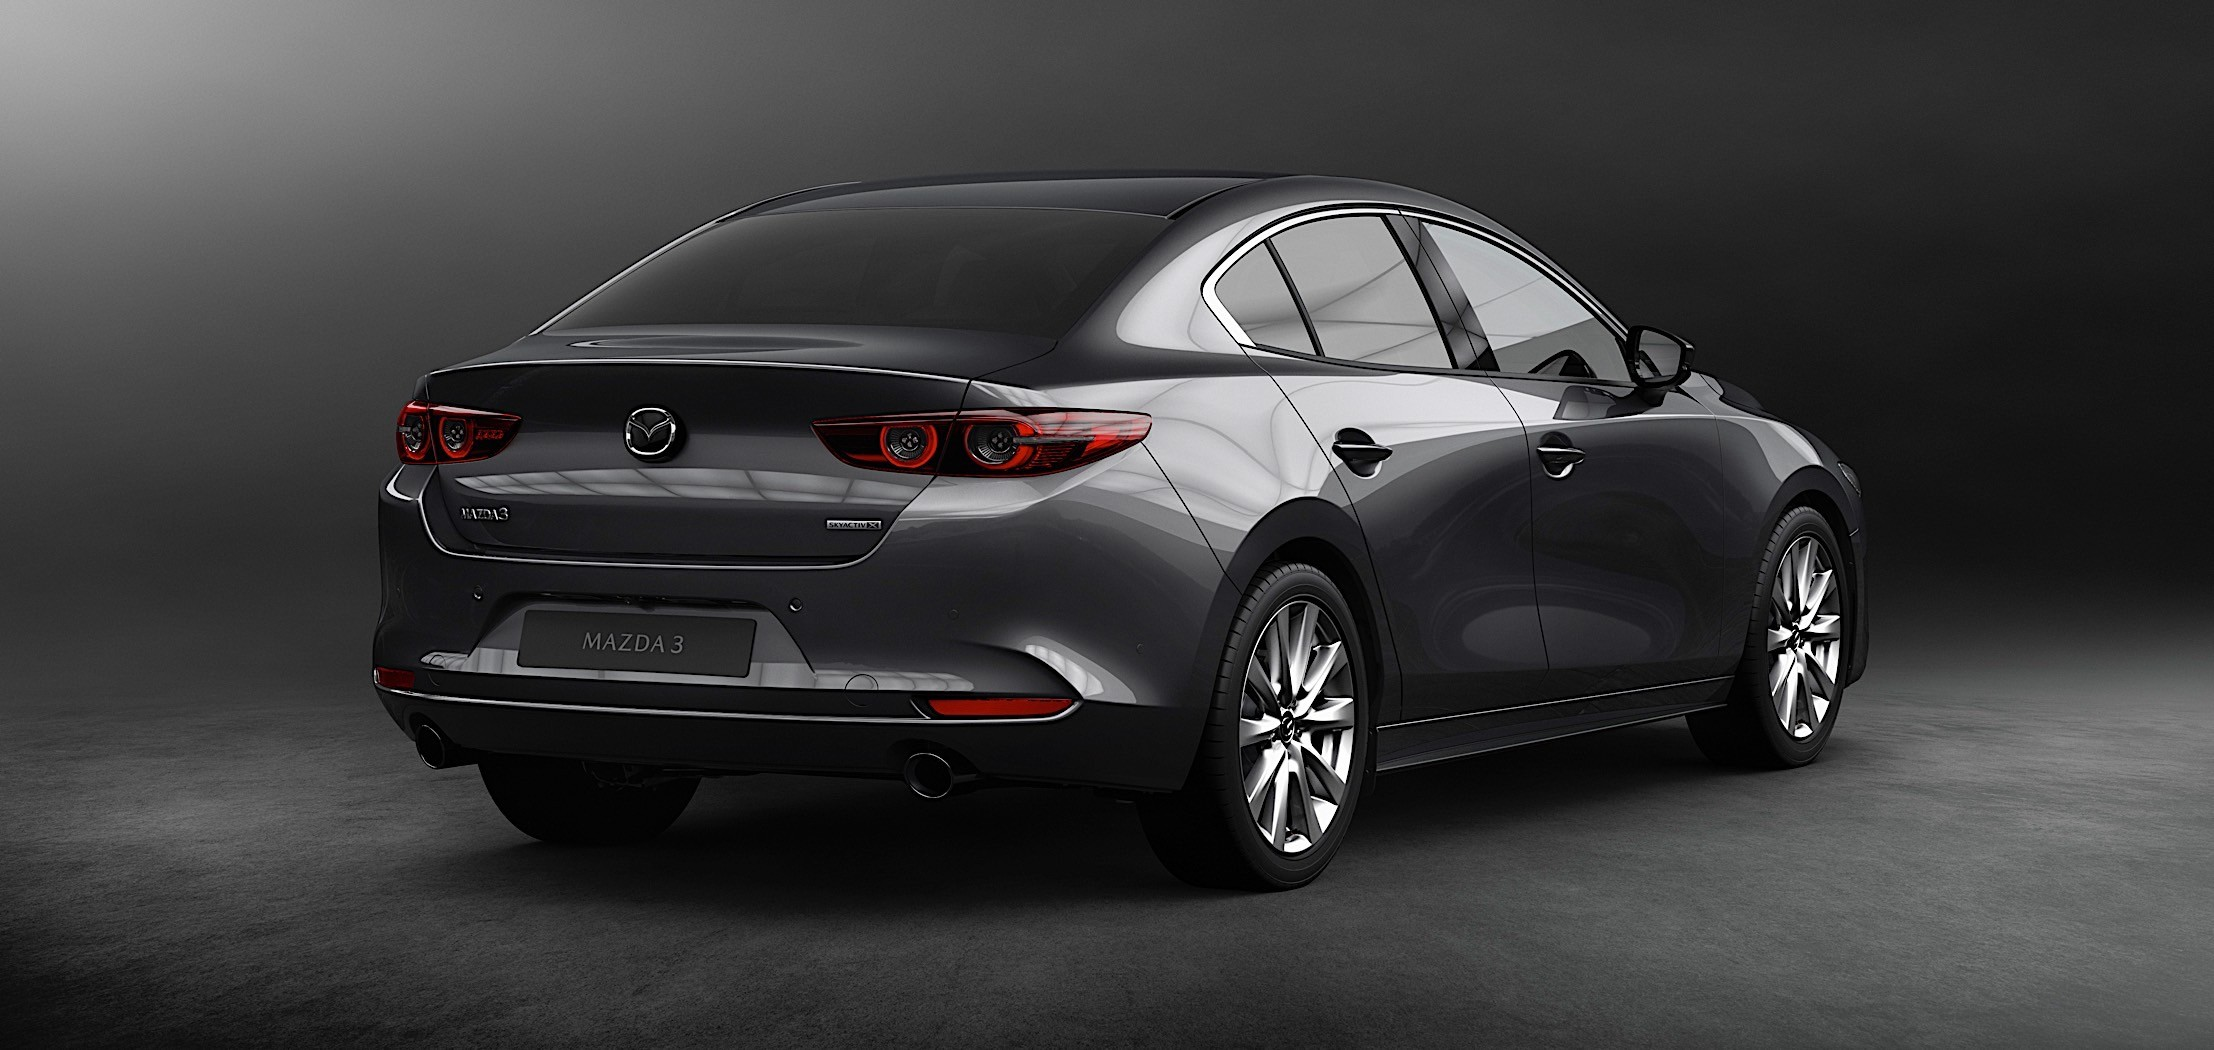 2020 mazda3 gets revolutionary skyactiv-x engine  full details released